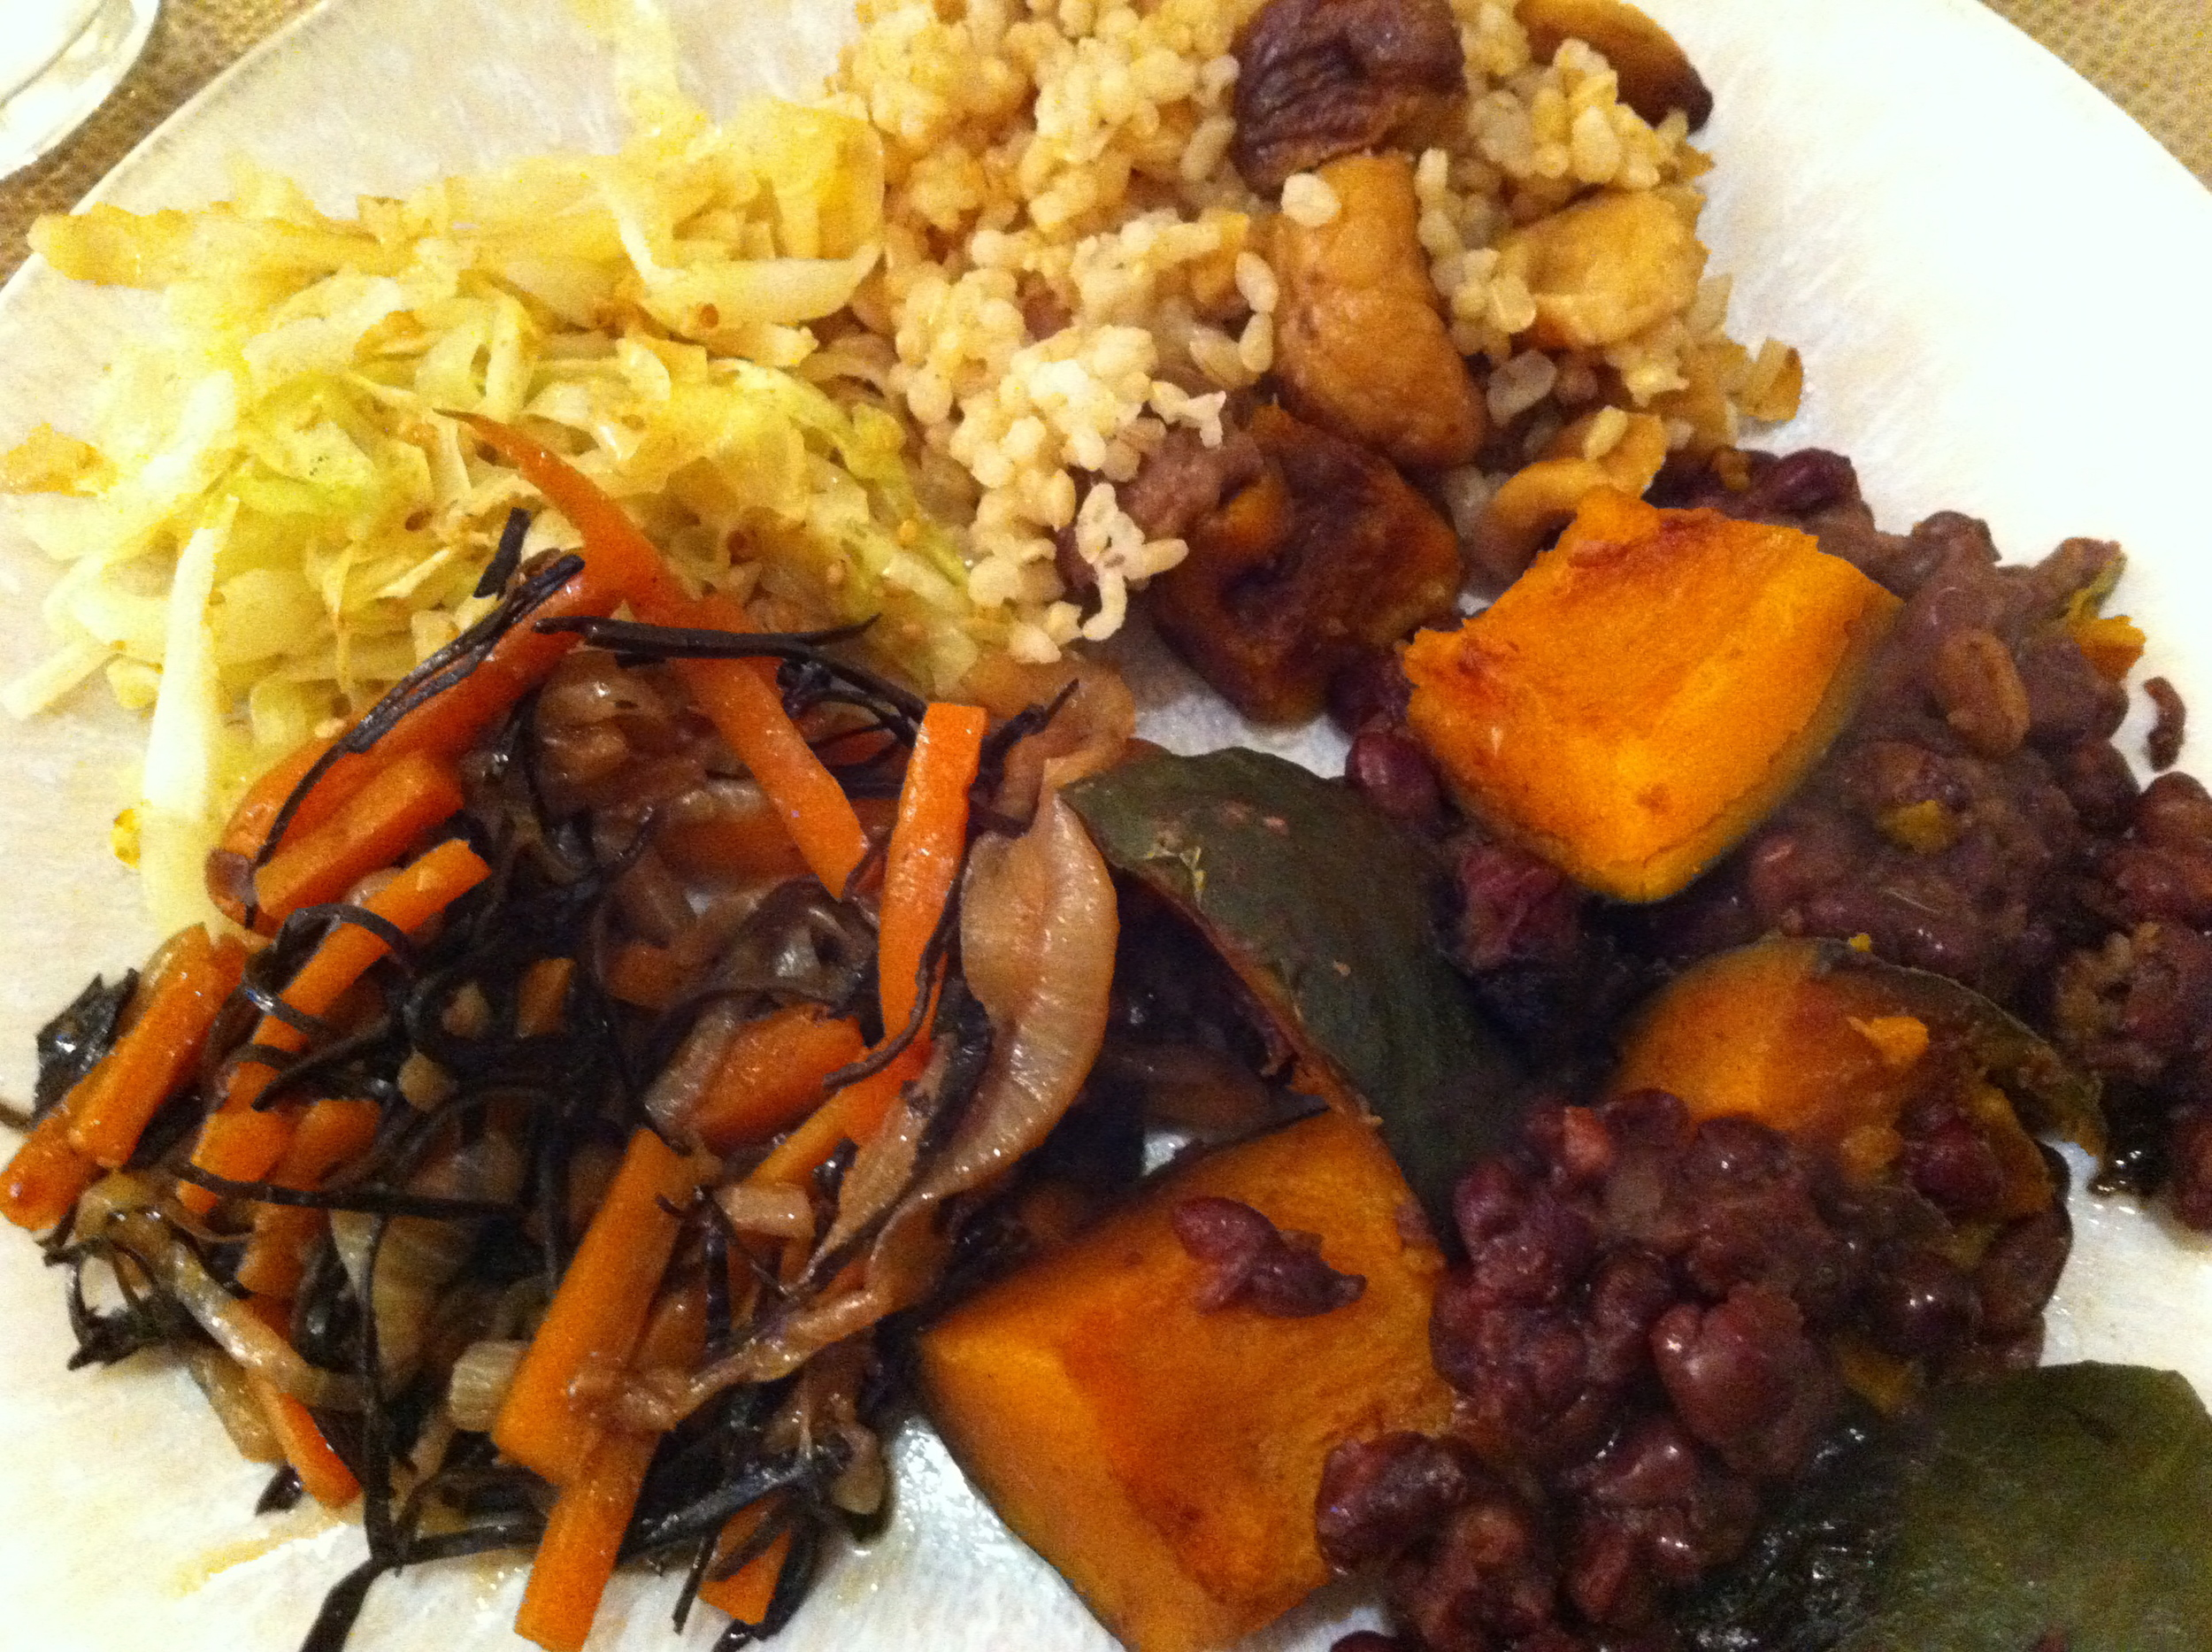 This combo of vegan macro foods makes a delicious dinner.